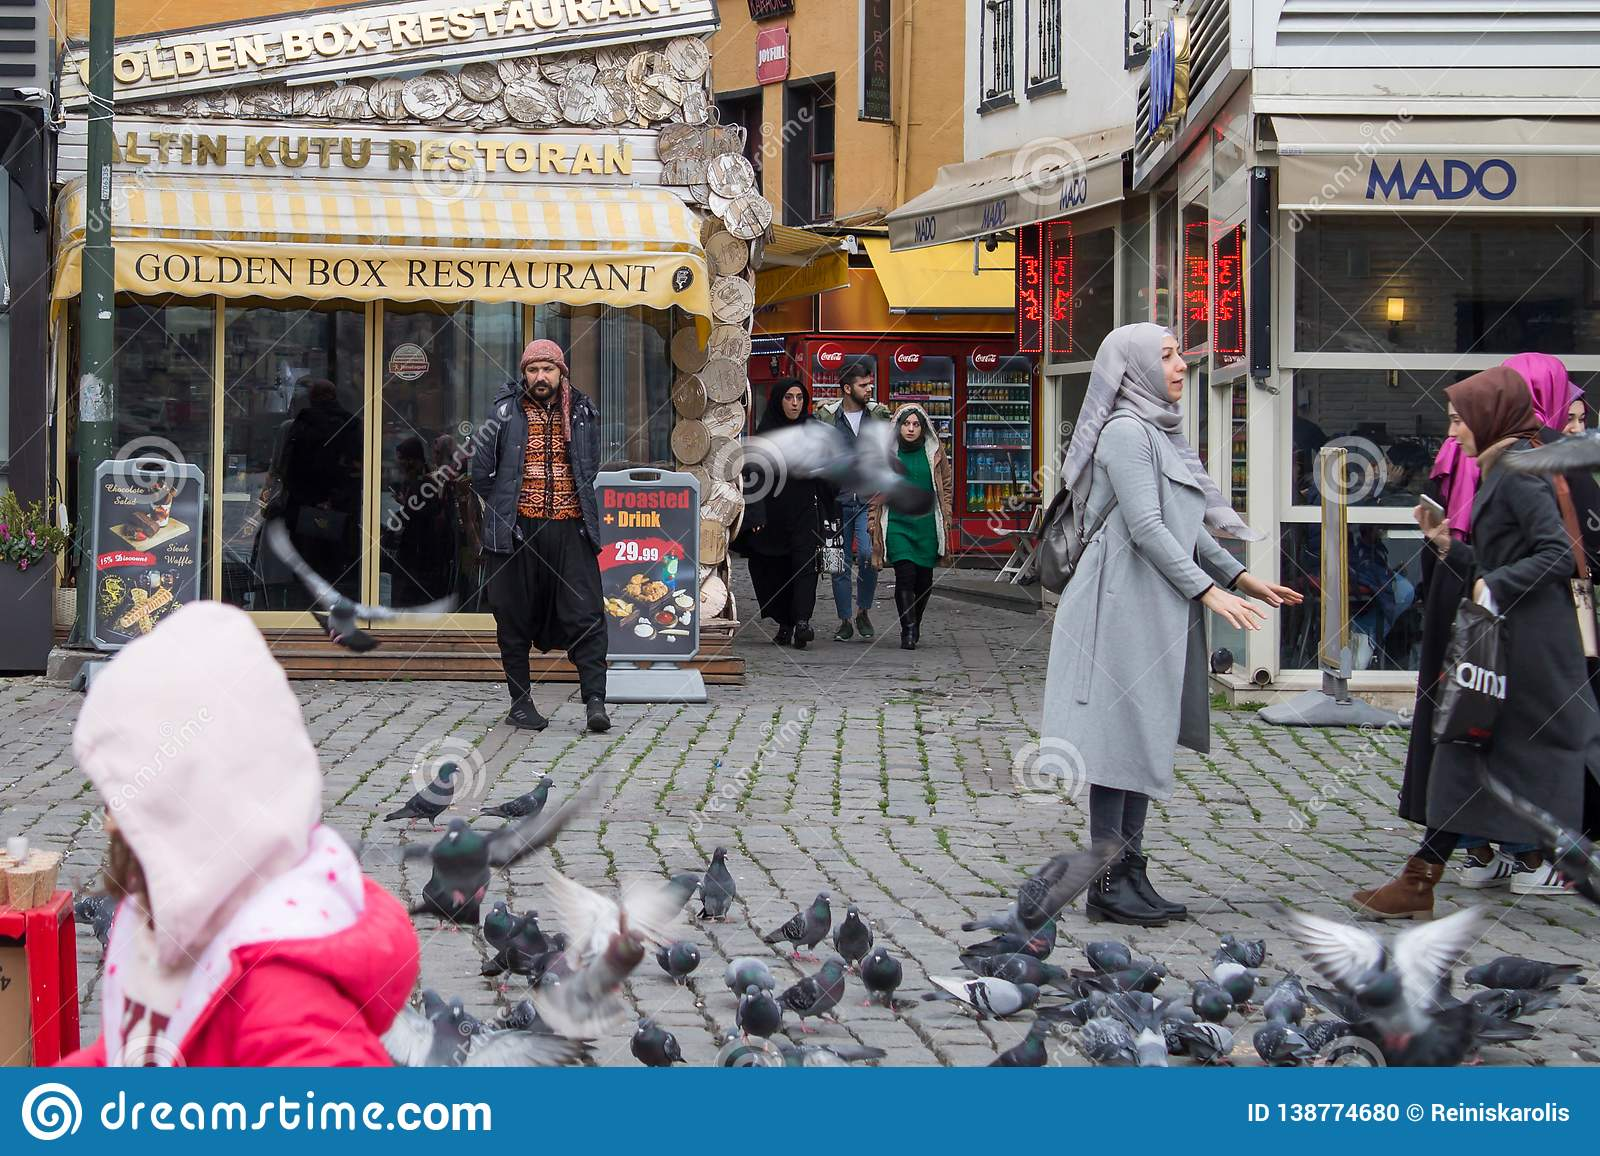 Istanbul Turkey - January 31 2019: A man is advertising restaurant while people feed and catch pigeons.